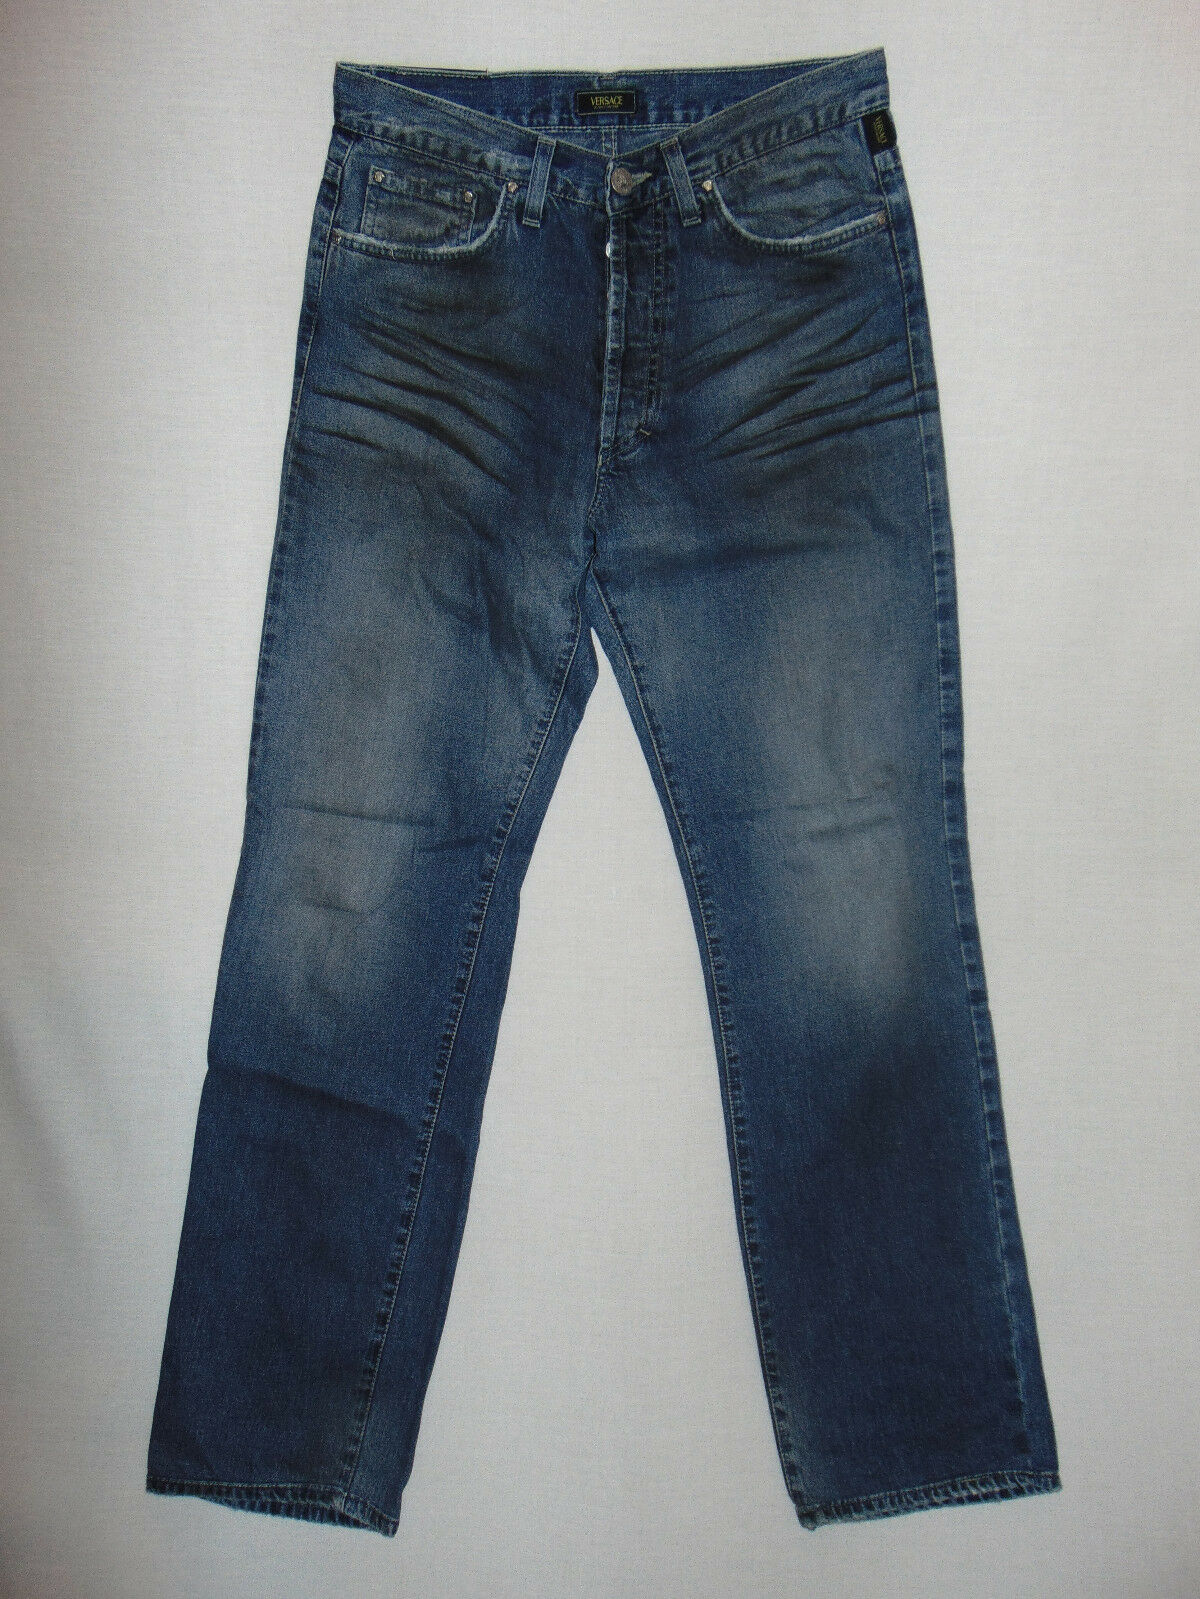 VERSACE  Mens bluee Denim Jeans  W30 L32